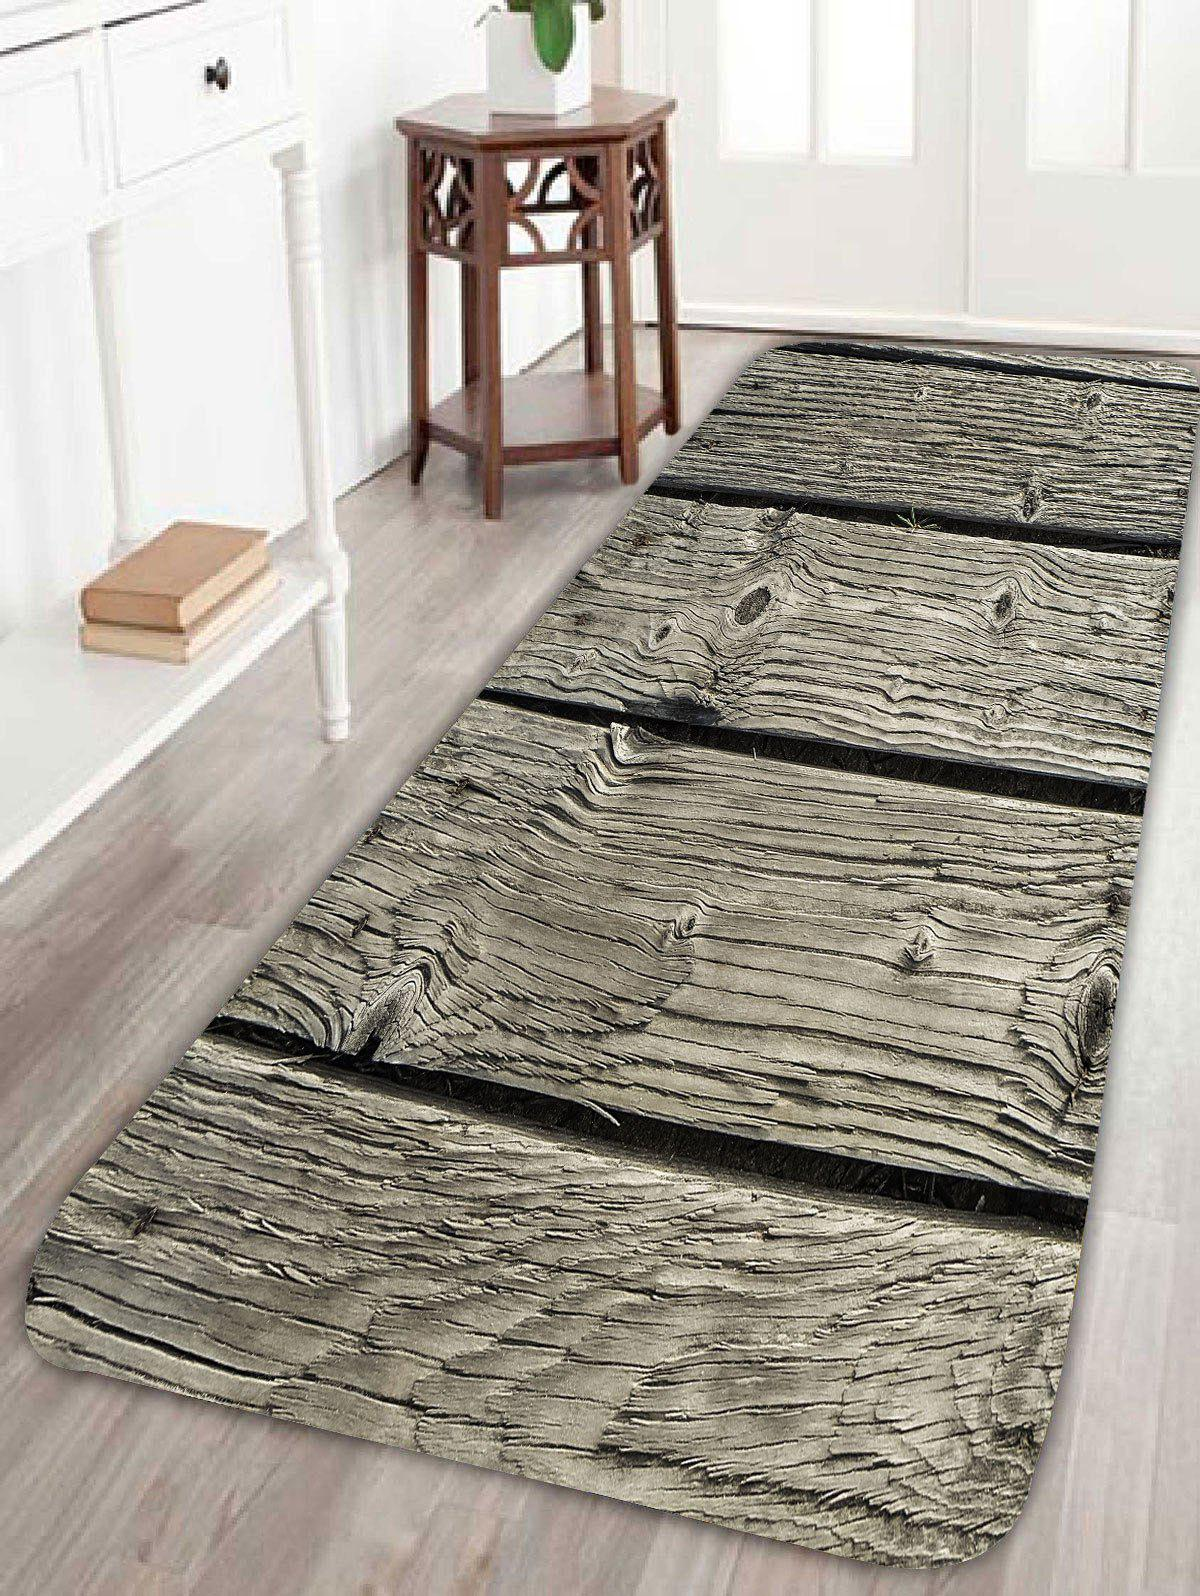 Soft Absorption Natural Wood Board Bath RugHOME<br><br>Size: W24 INCH * L71 INCH; Color: WOOD; Products Type: Bath rugs; Materials: Coral FLeece; Pattern: Print; Style: Vintage; Shape: Rectangle; Package Contents: 1 x Bath Rug;